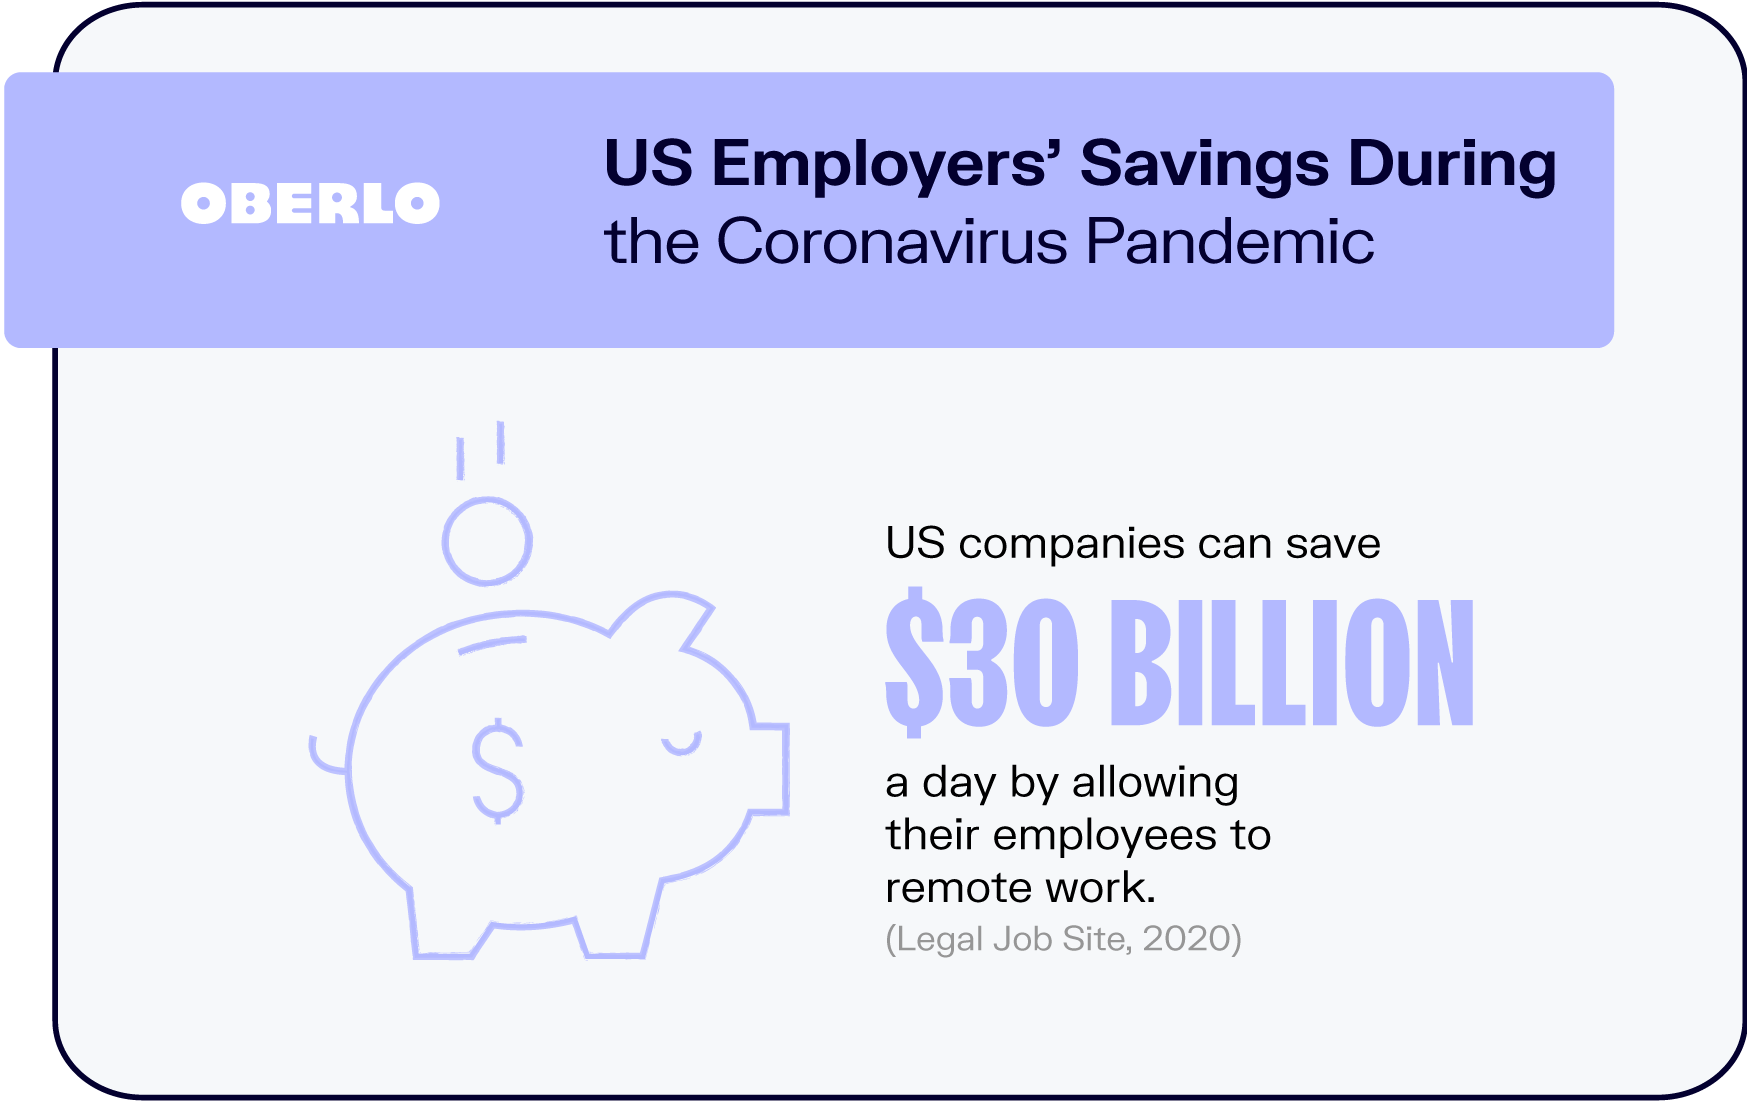 US Employers' Savings During the Coronavirus Pandemic